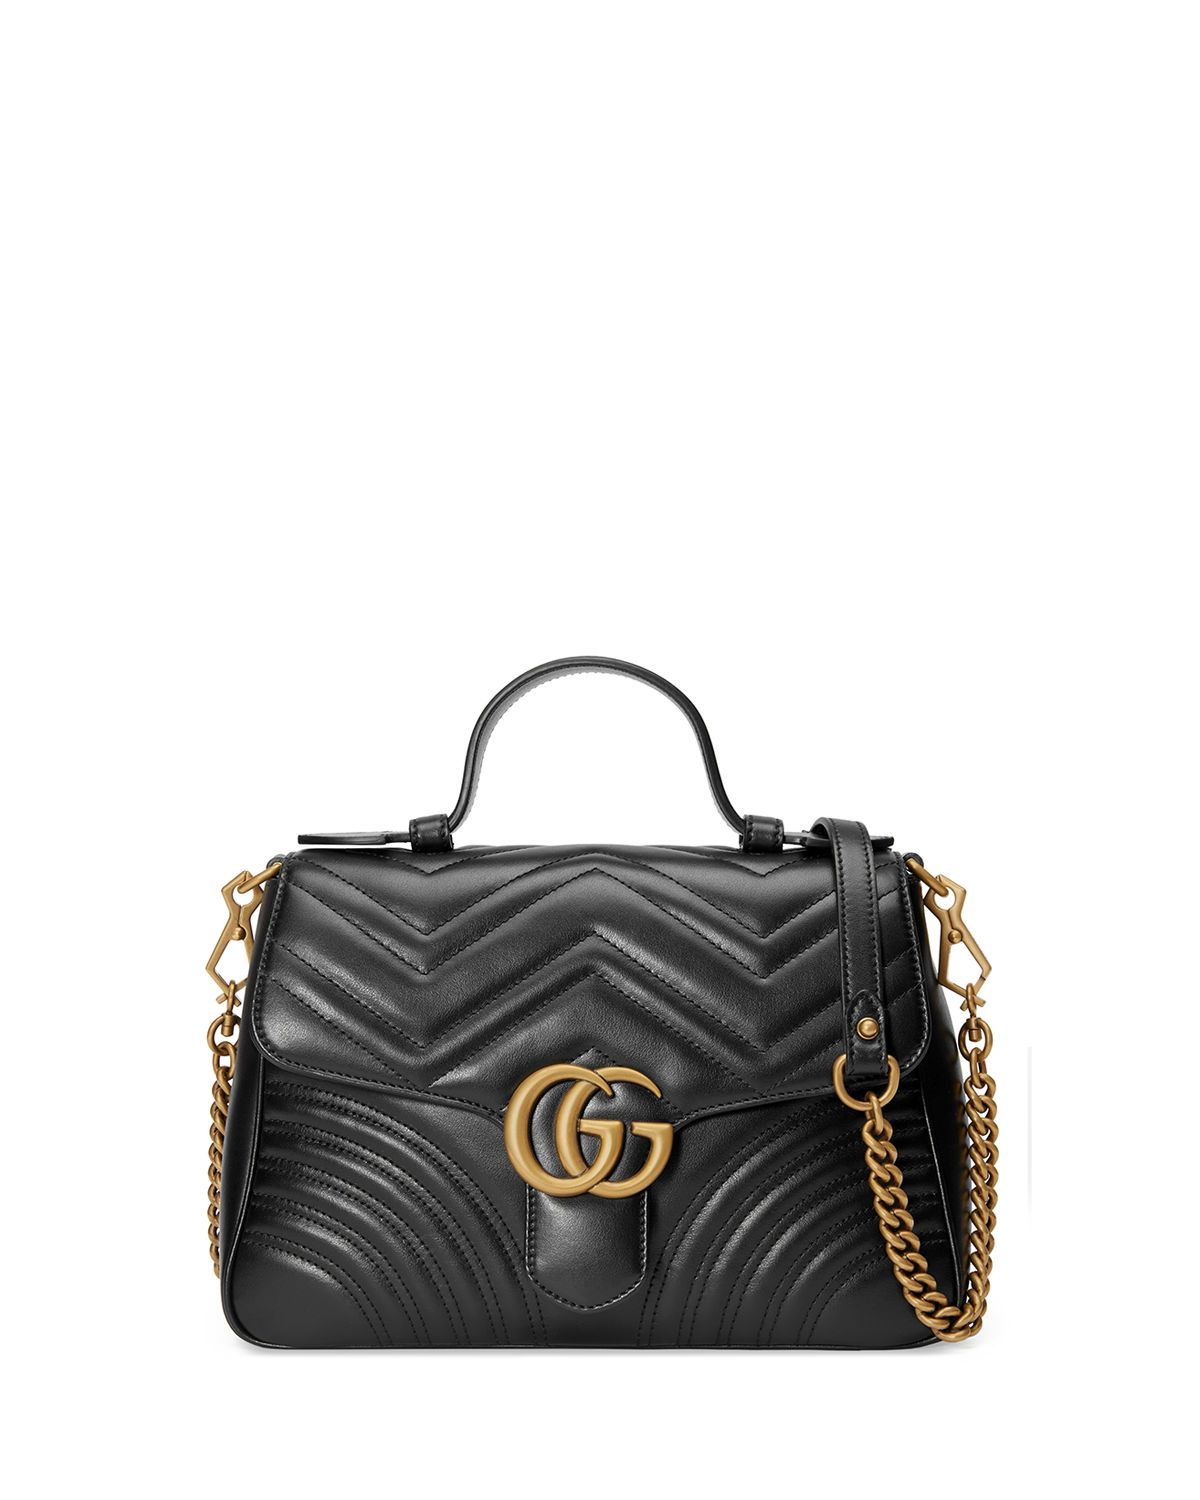 Gucci GG Marmont Small Chevron Quilted Top-Handle Bag with Chain Strap kQaLA2